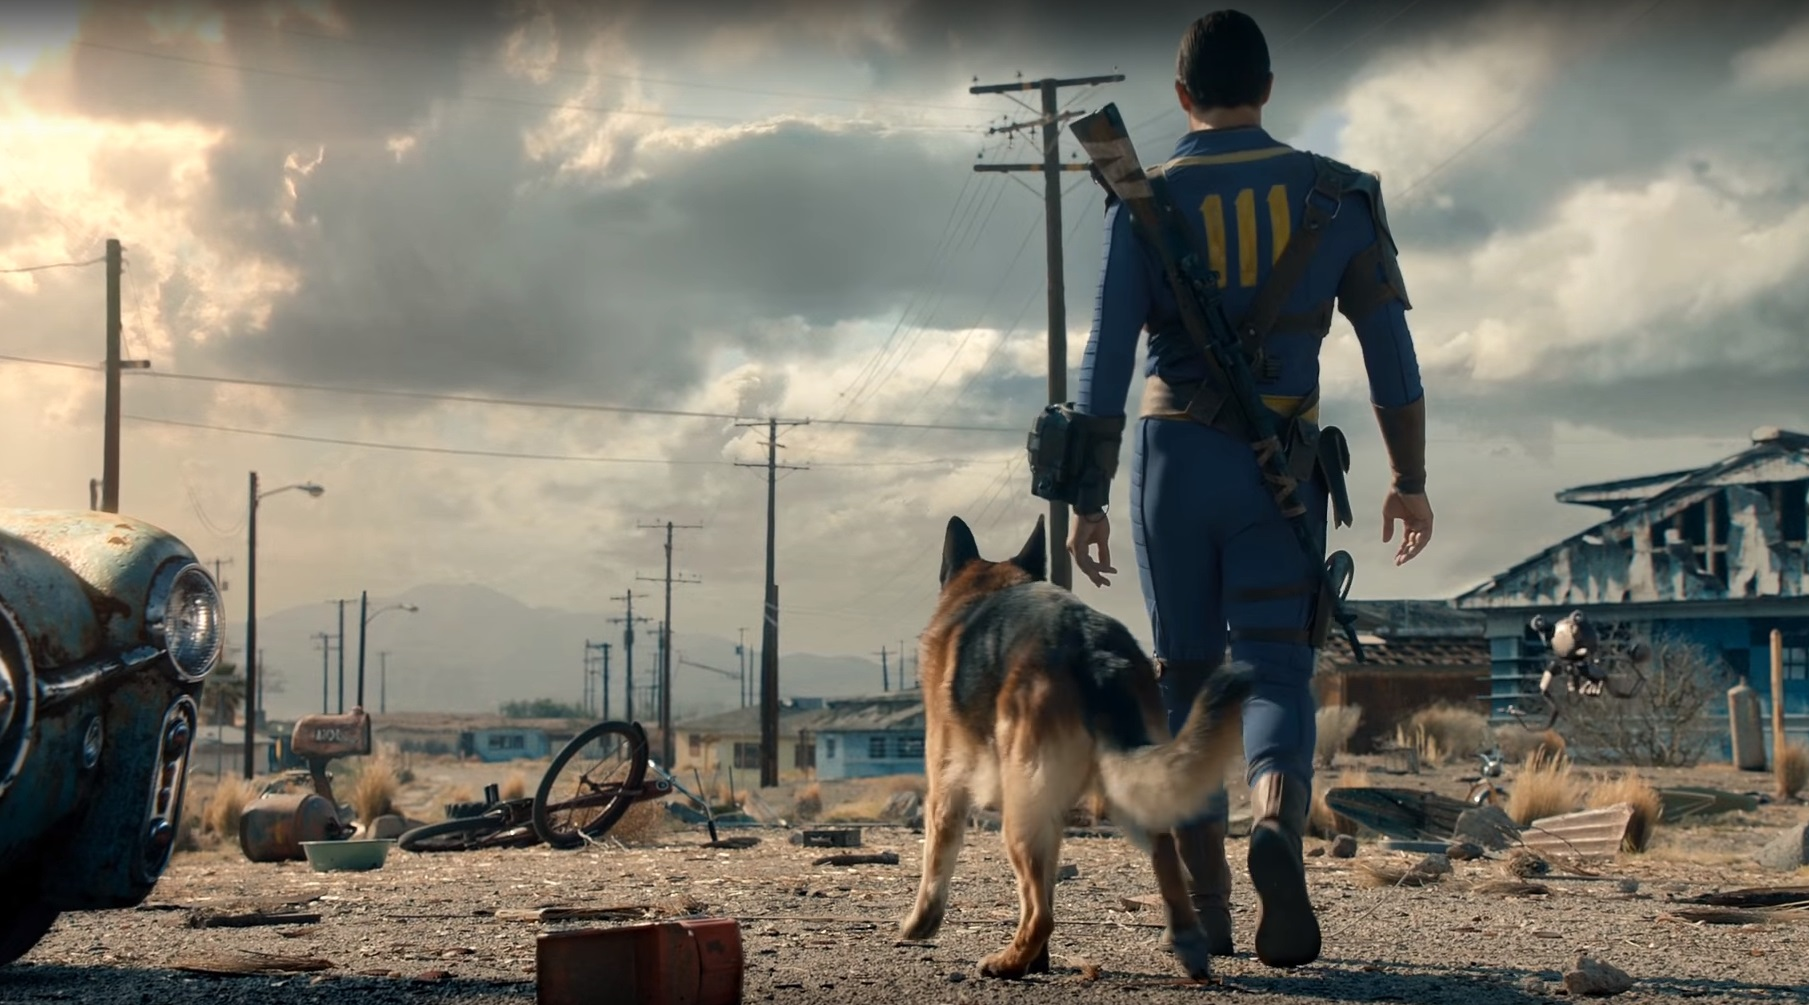 Fall Out Boy Pc Wallpaper Fallout 4 Ads Ran Nearly 800 Times As Console Games